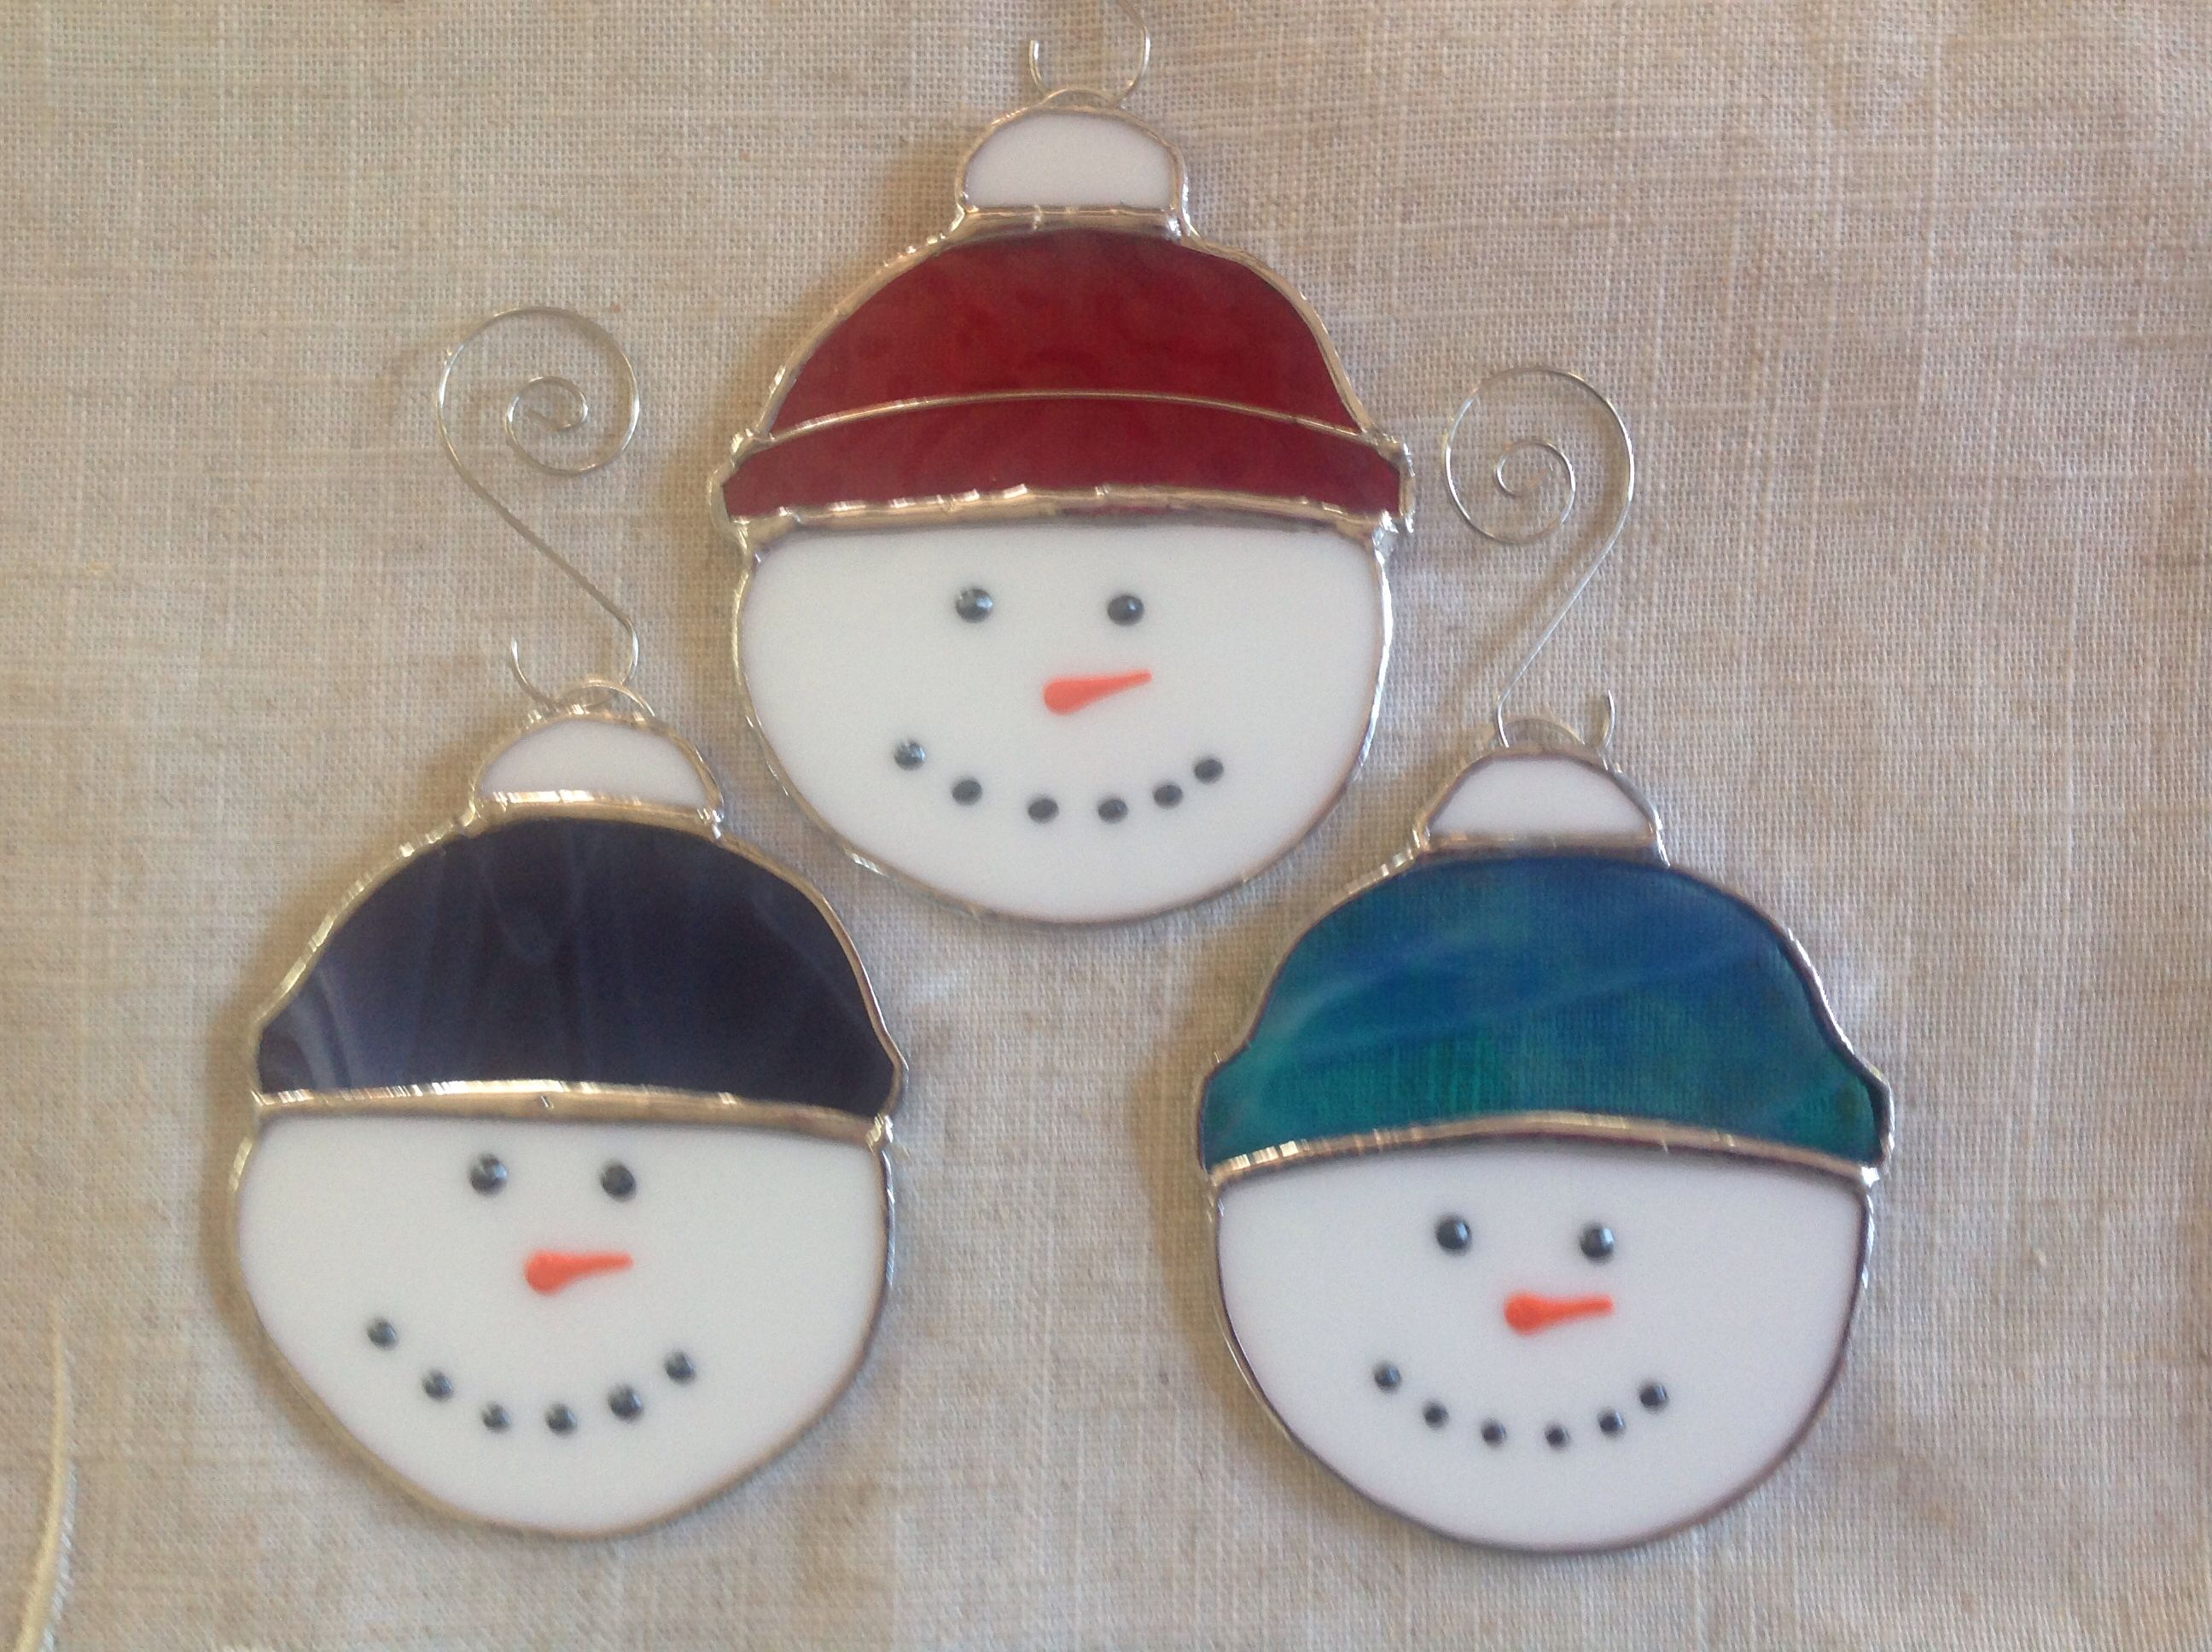 Stained Glass Snowman Ornaments Stained Glass Ornaments Stained Glass Christmas Stained Glass Diy